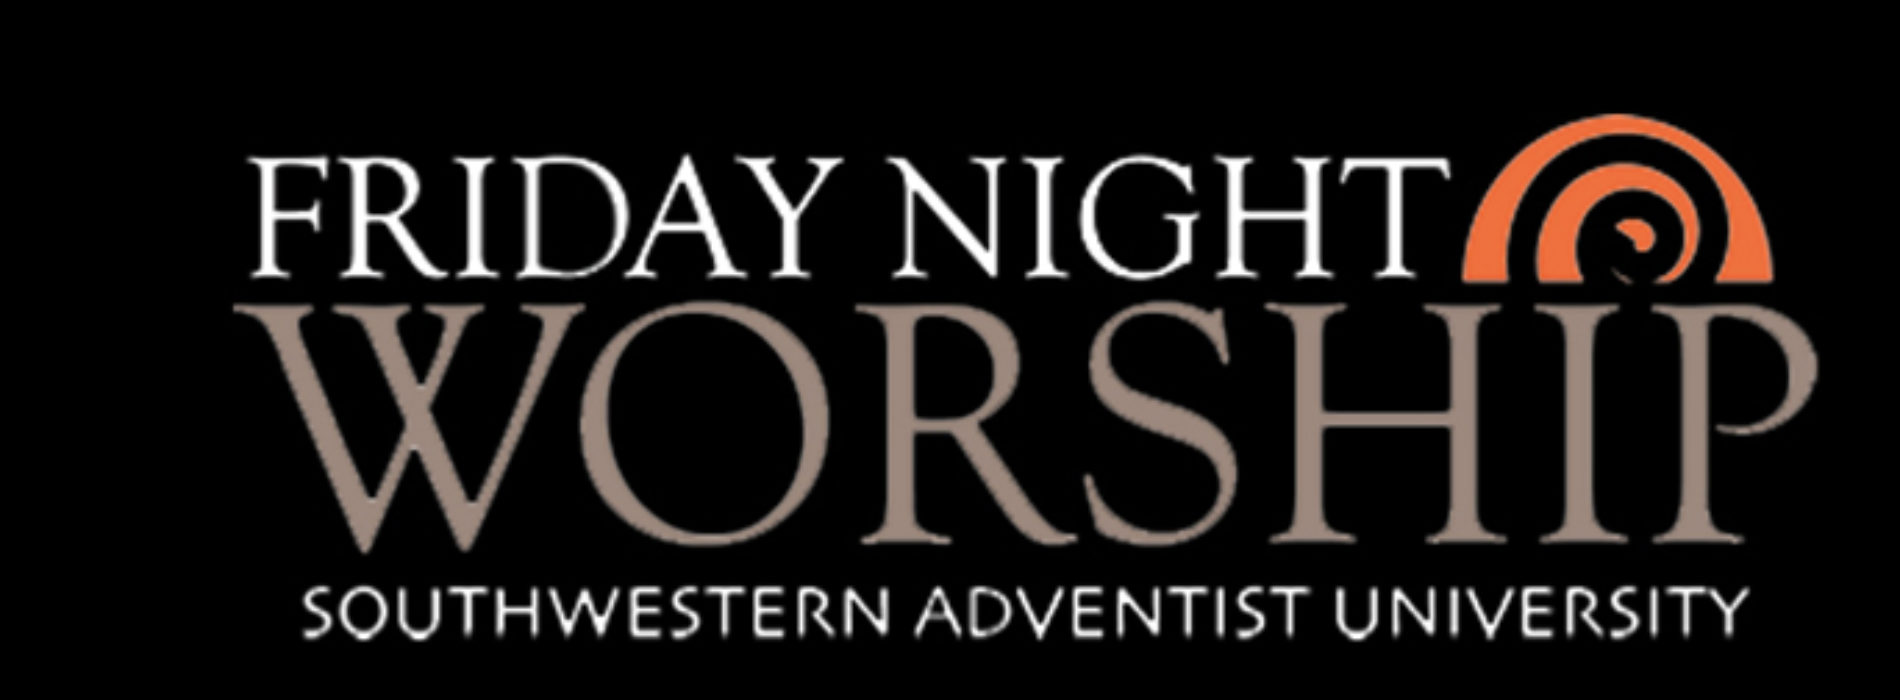 Worship Activities Planned for Weekend